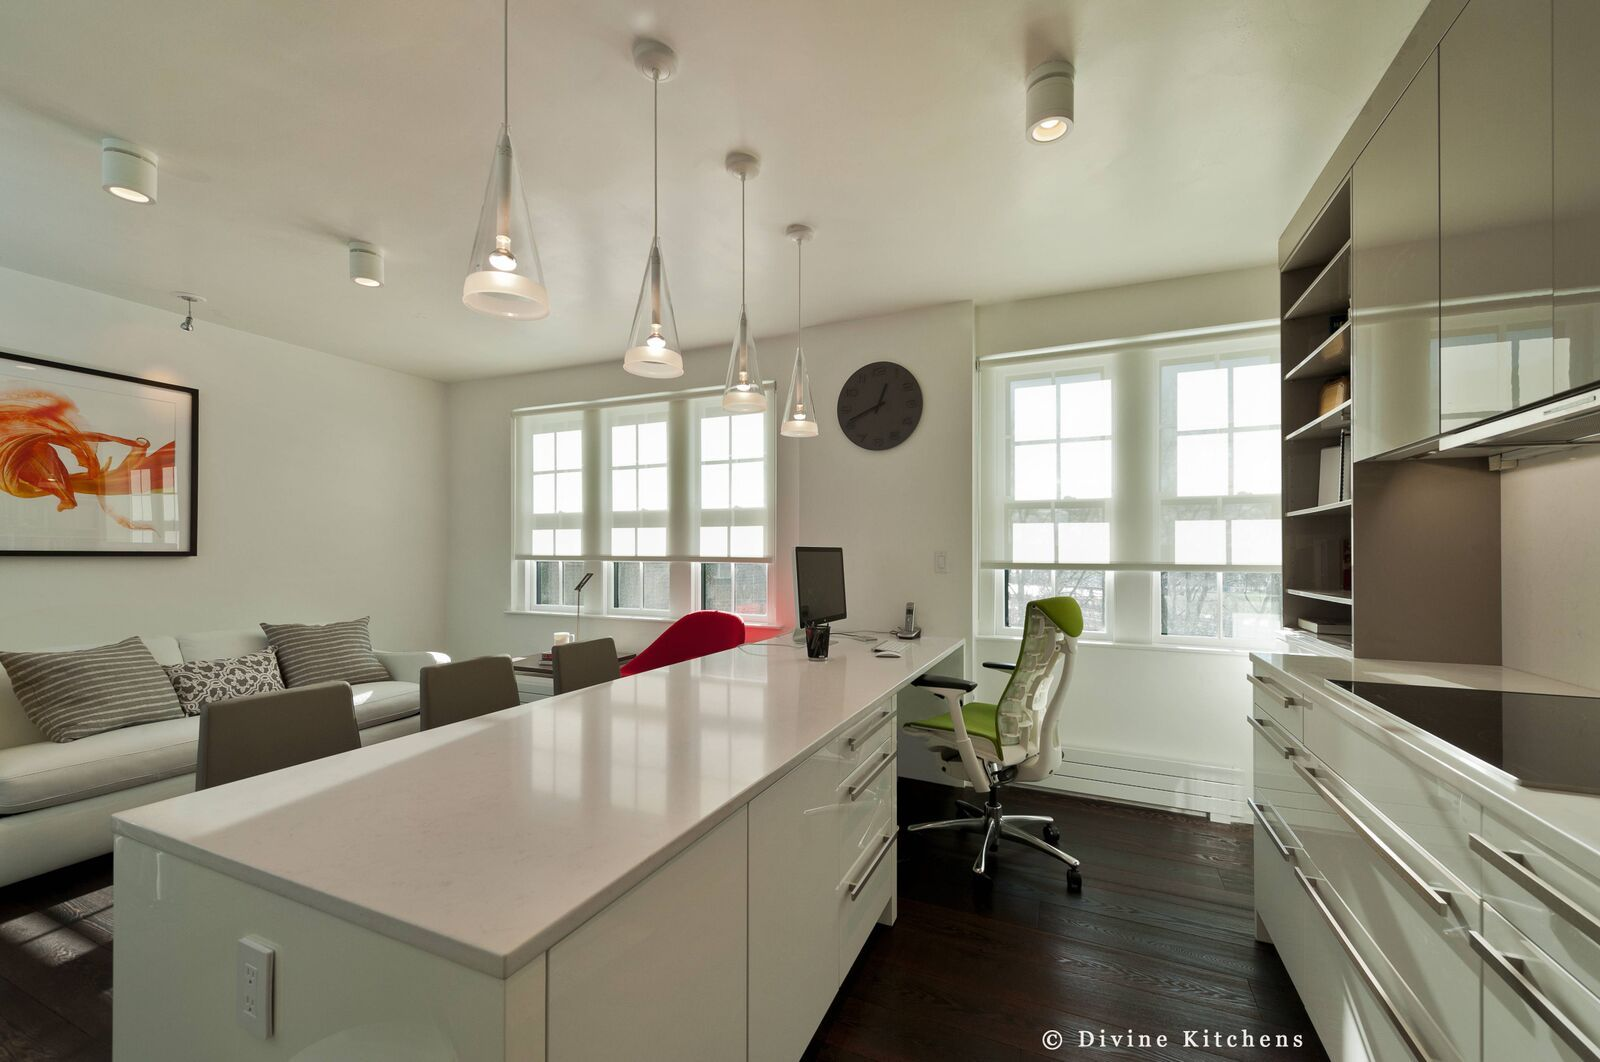 Kitchen Designers Boston Multiuse Space A Kitchen And Office Space In One #smallspace